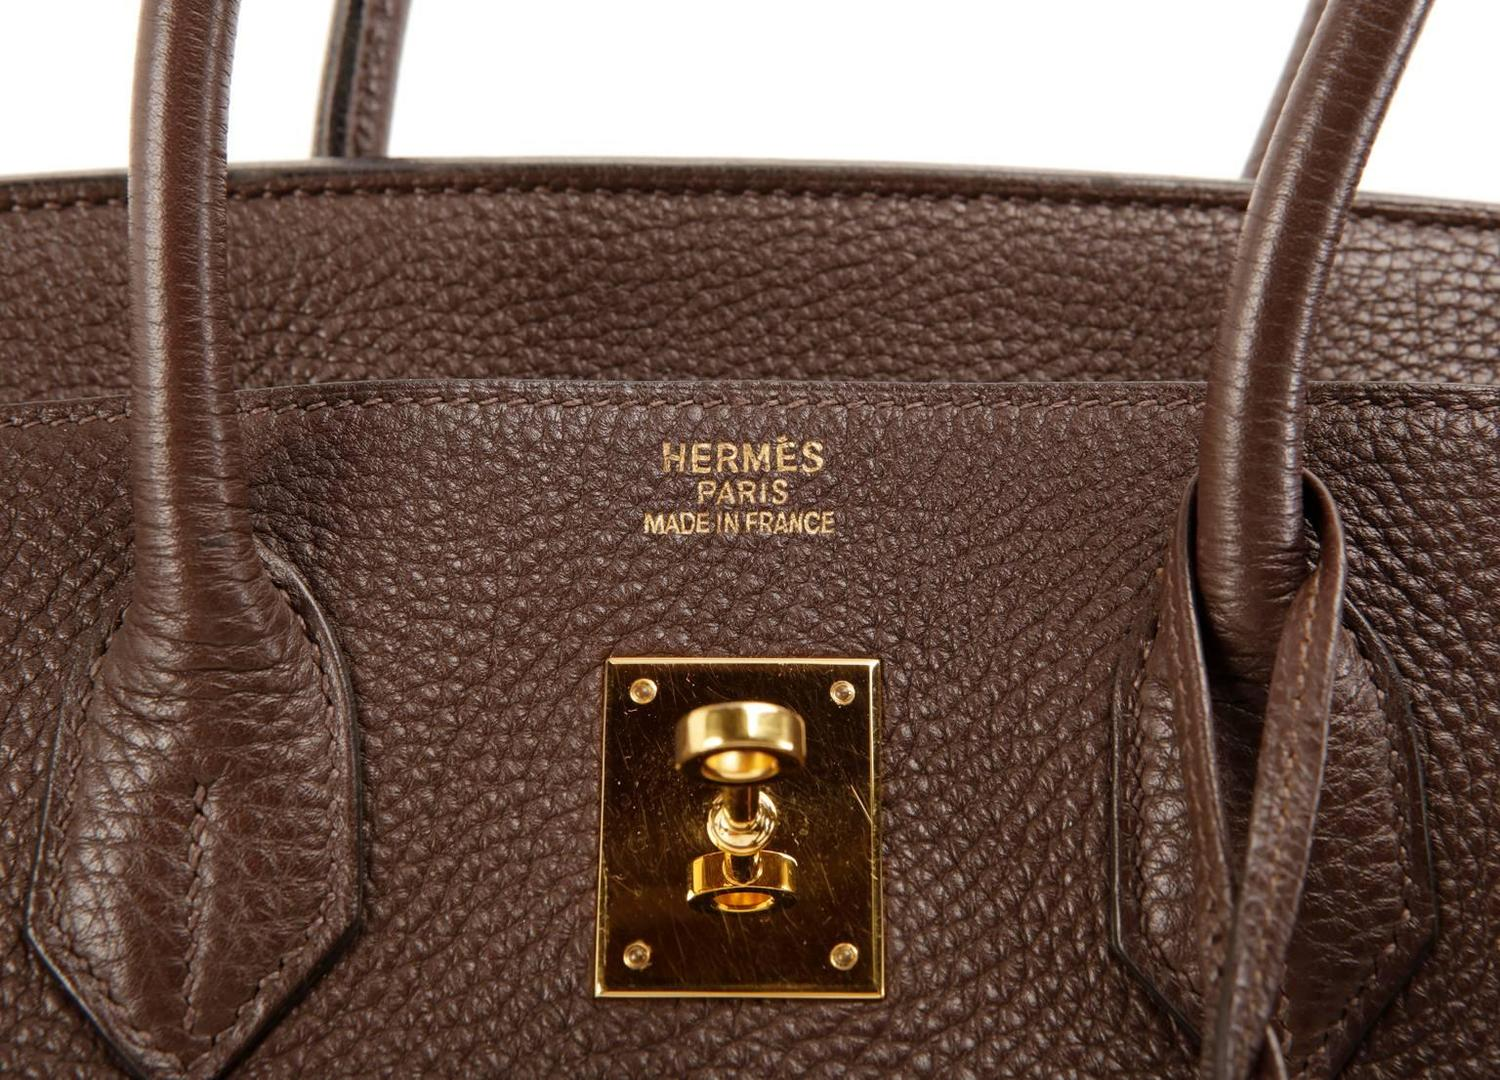 bags hermes - Herm��s Brown Togo Leather 35 cm Birkin Bag with GHW at 1stdibs